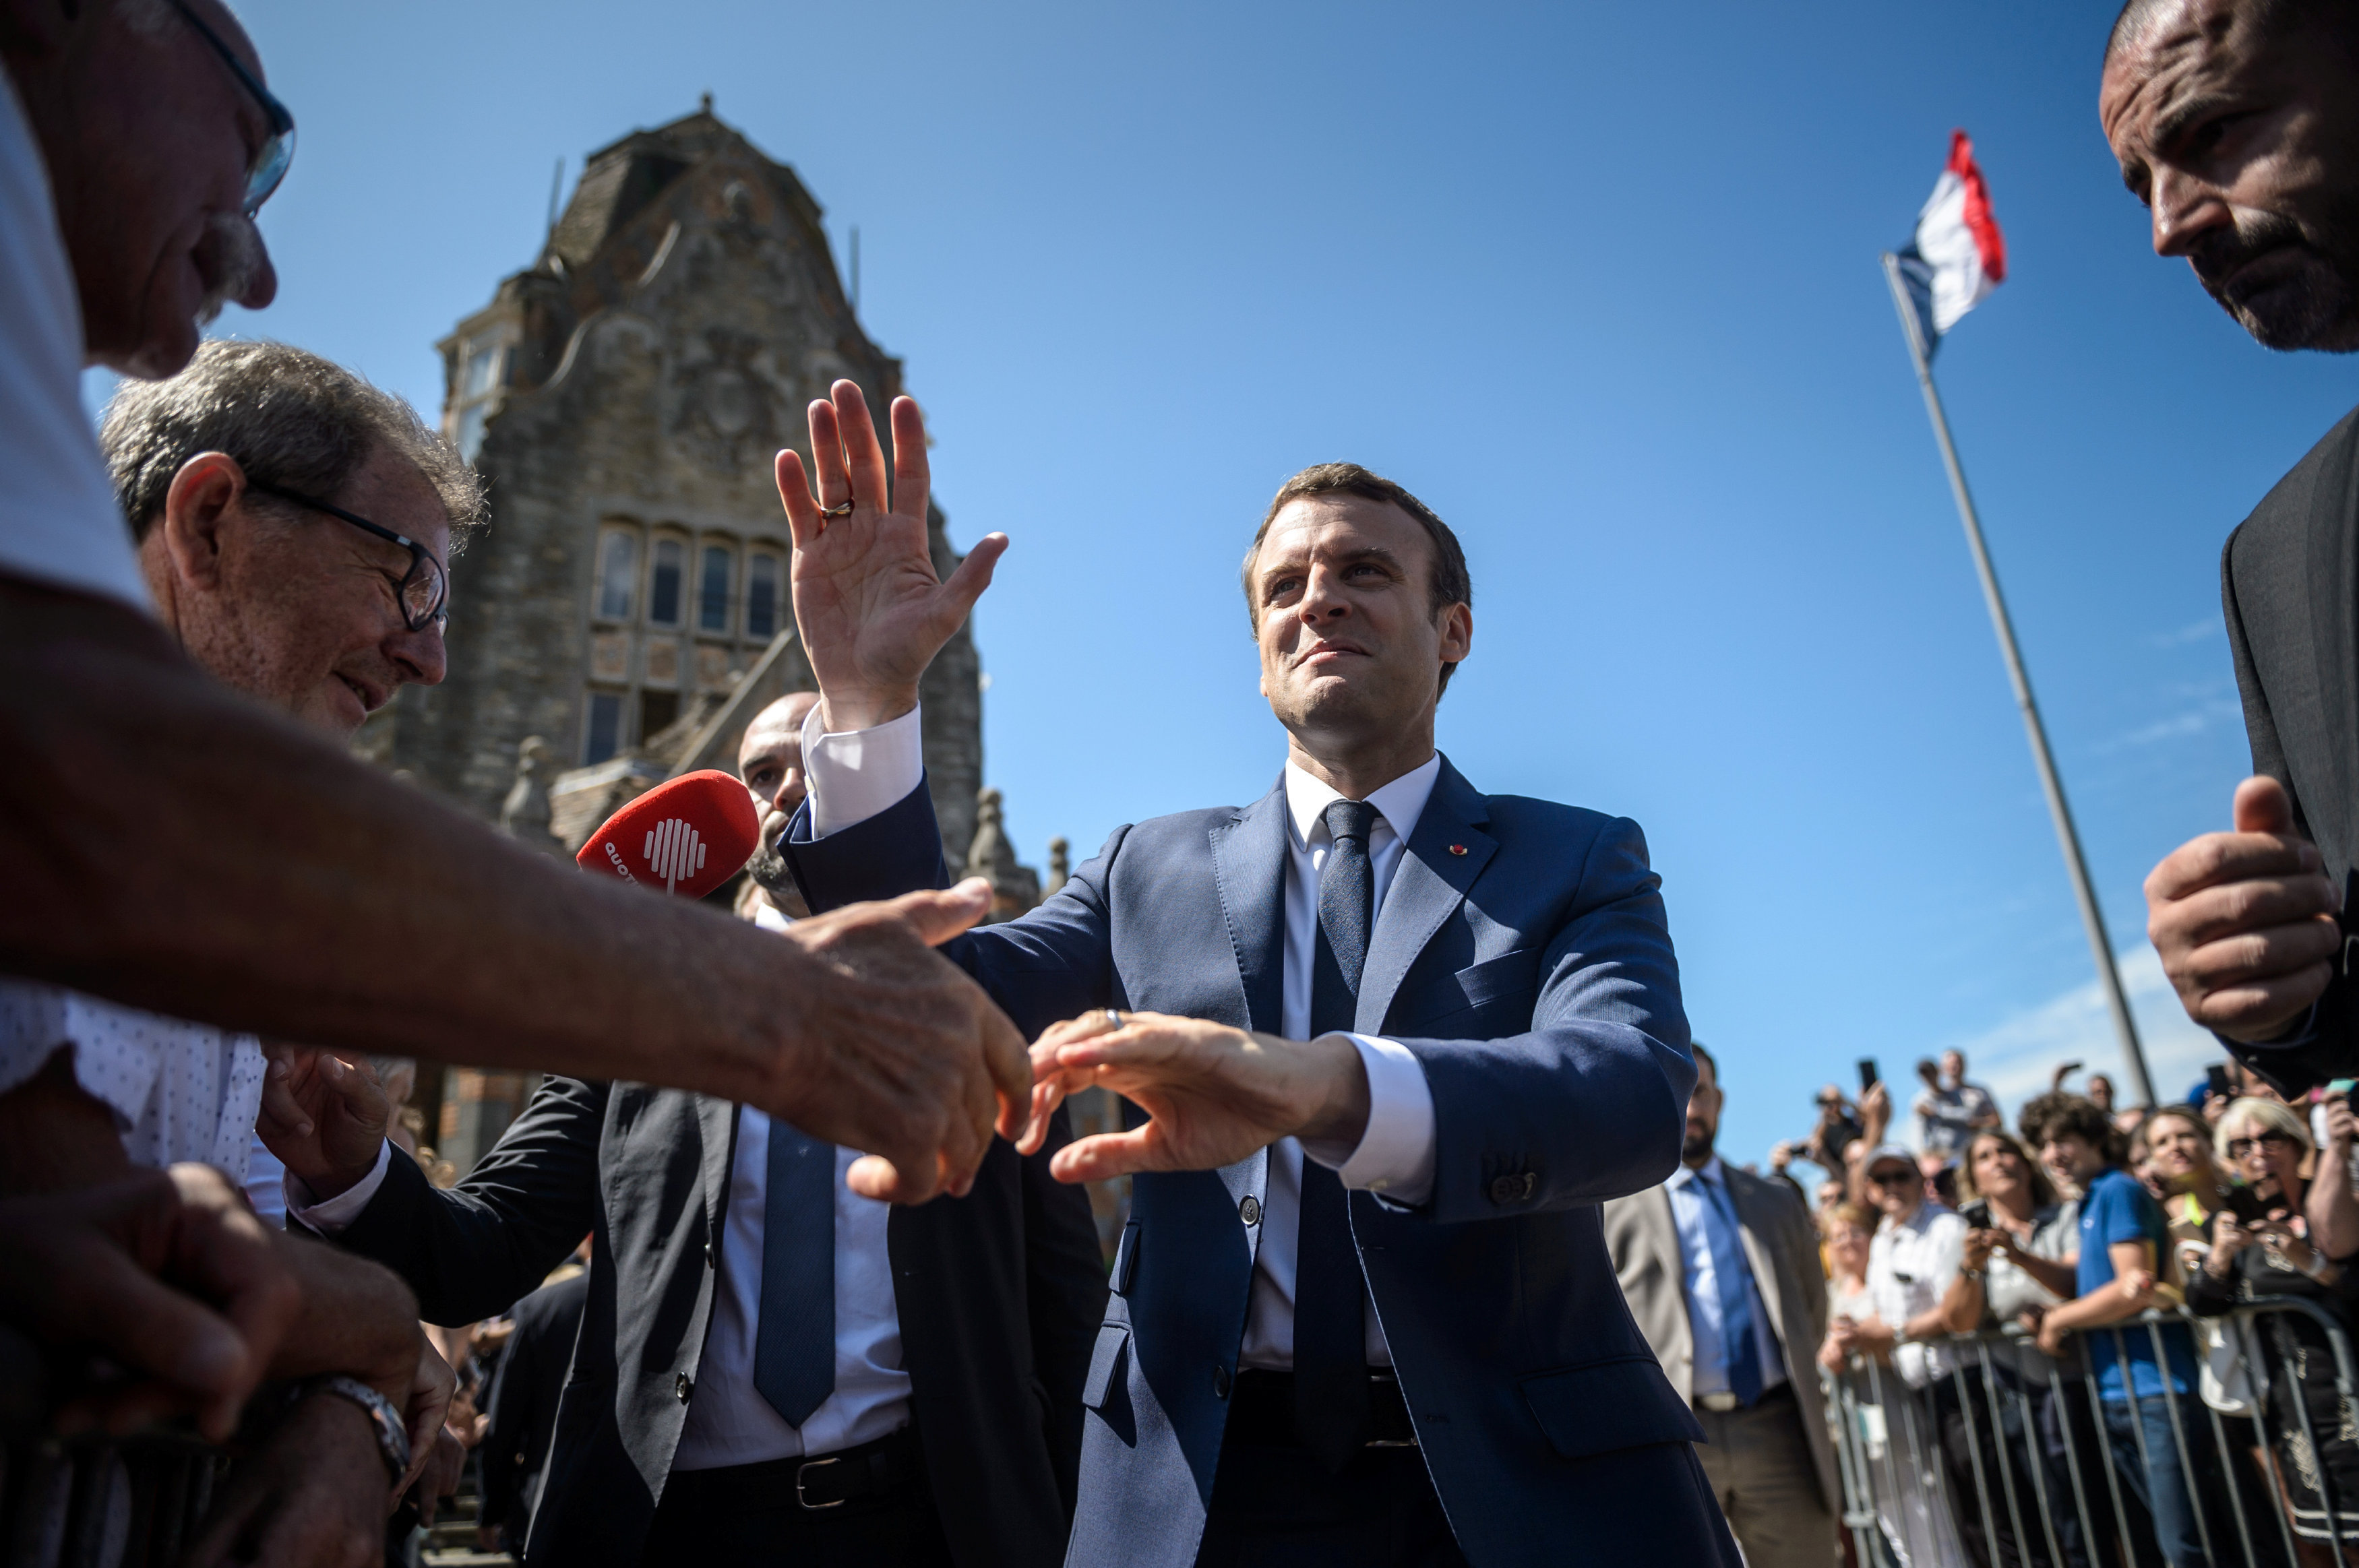 French President Emmanuel Macron leaves the polling station after voting in the first of two rounds of parliamentary elections in Le Touquet, France, June 11, 2017